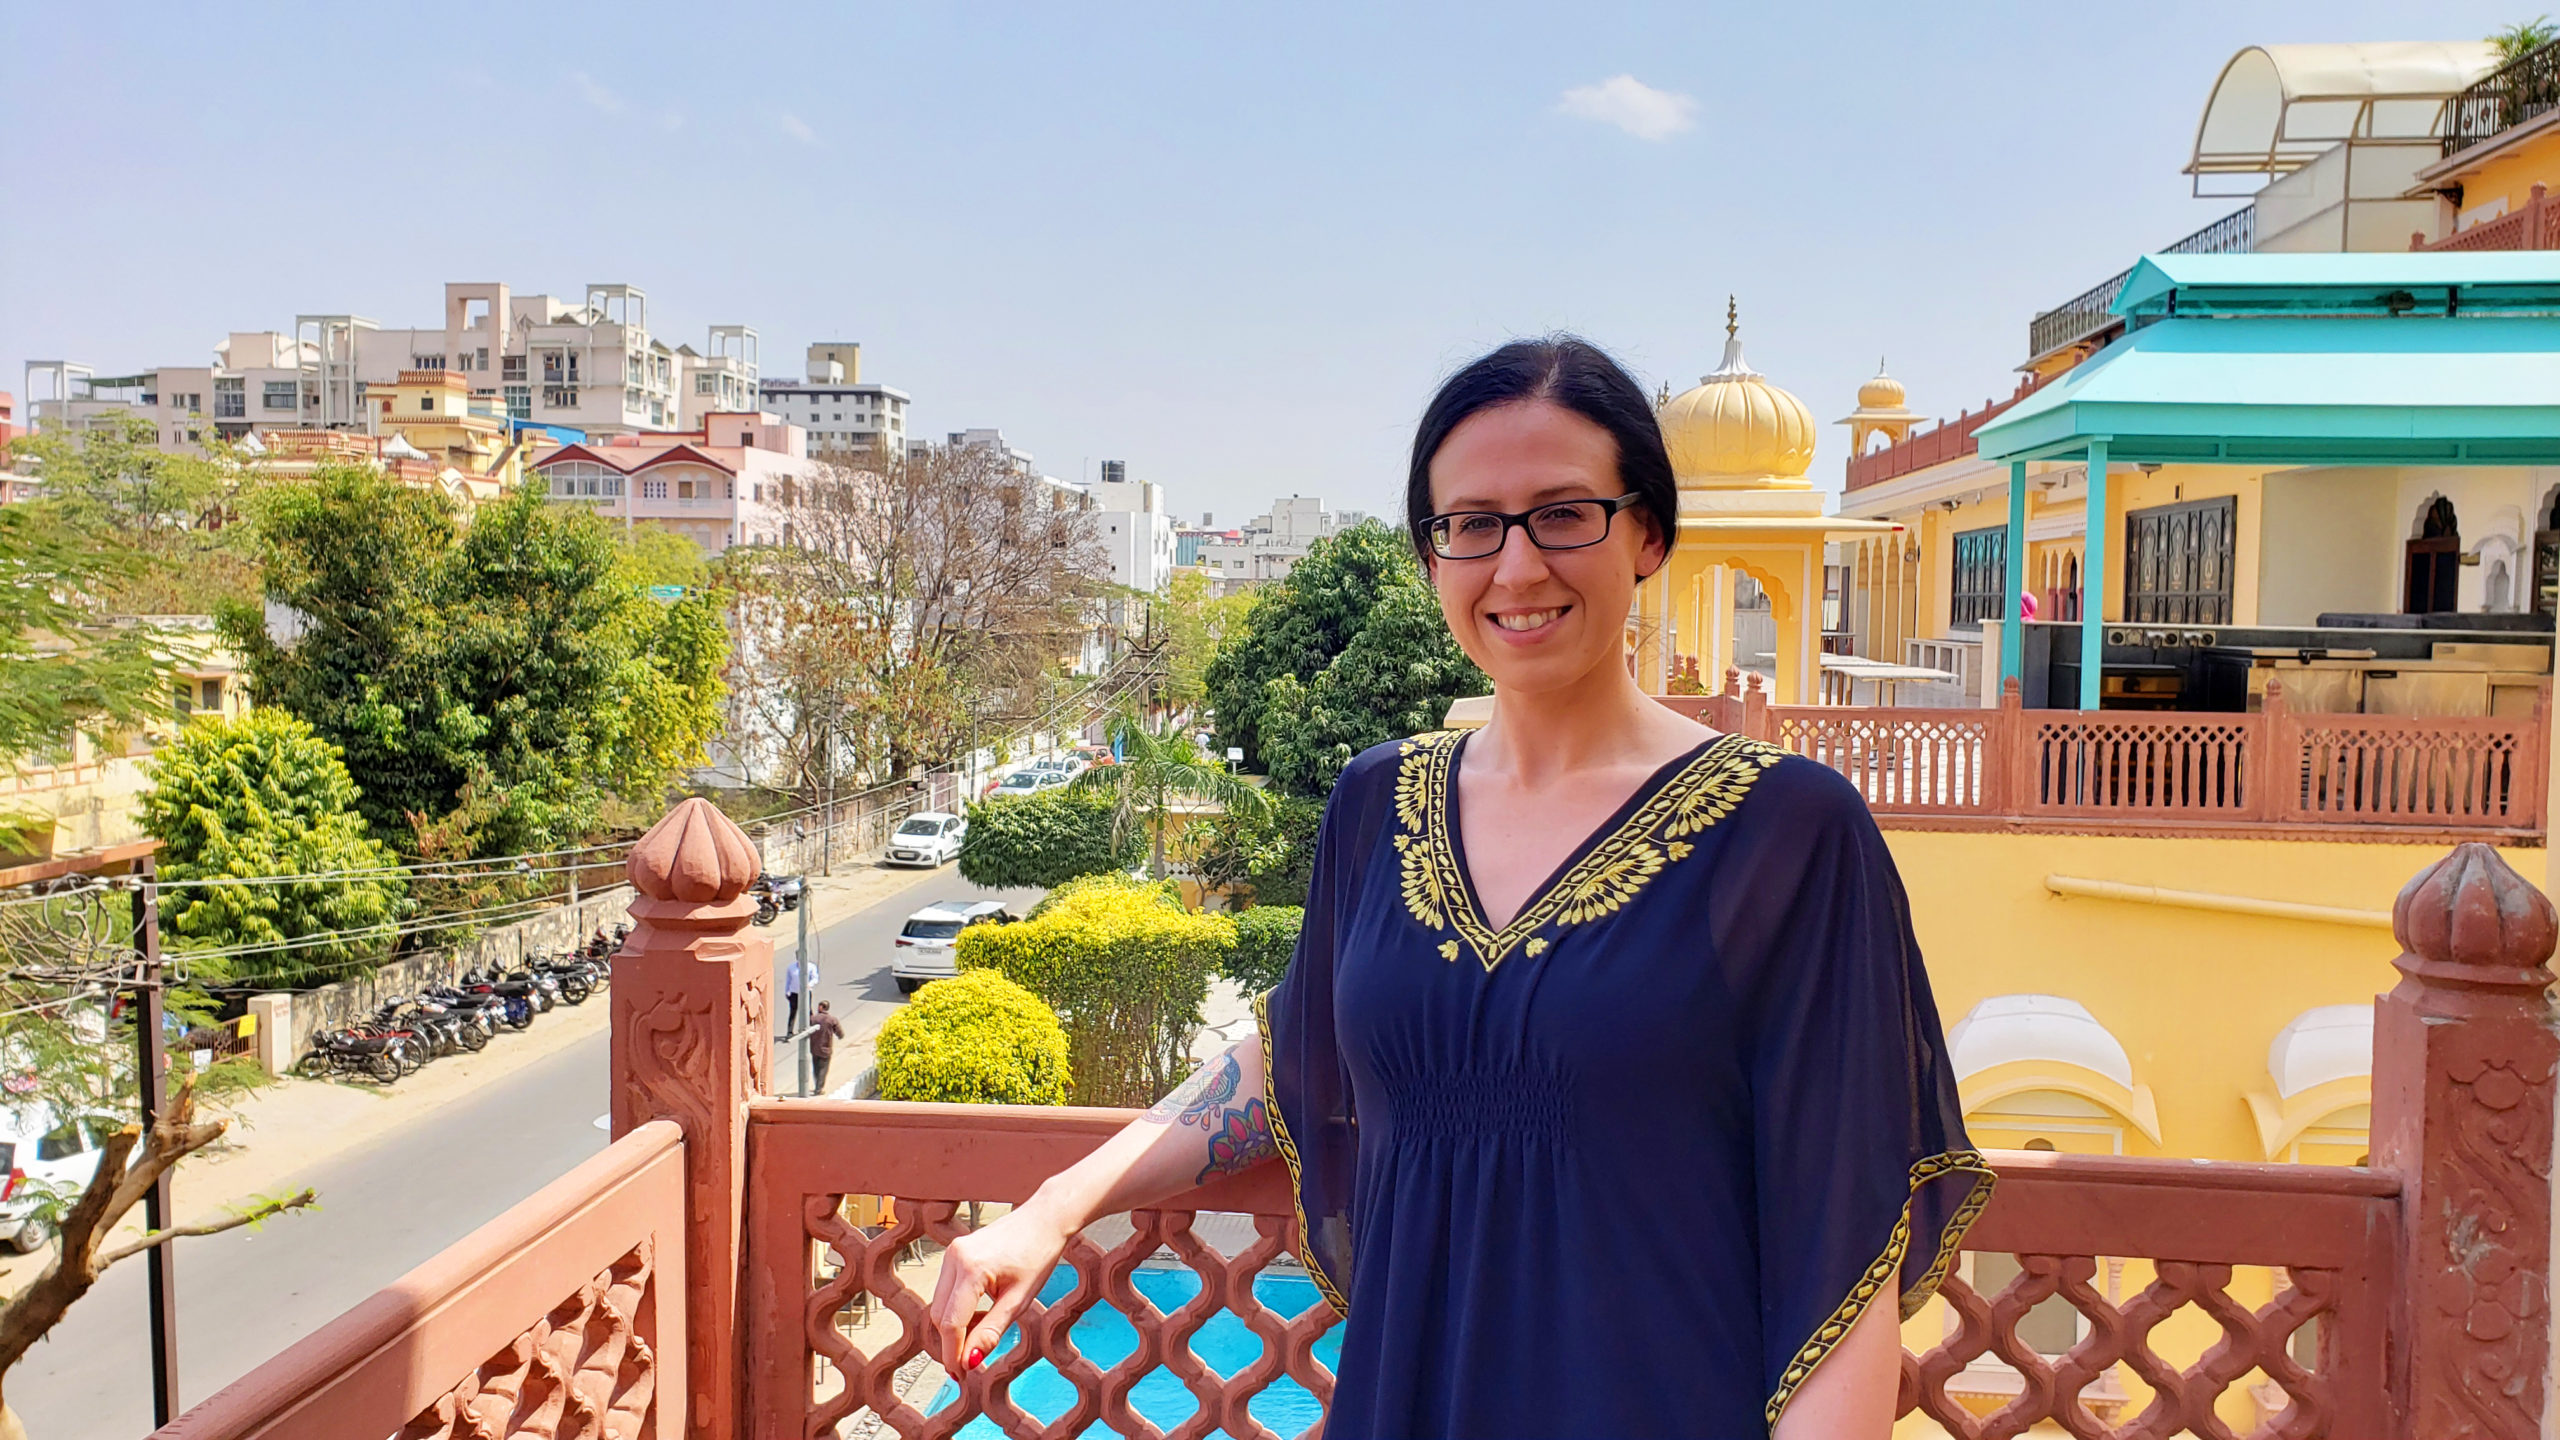 Cultural Do's & Don'ts While Visiting India